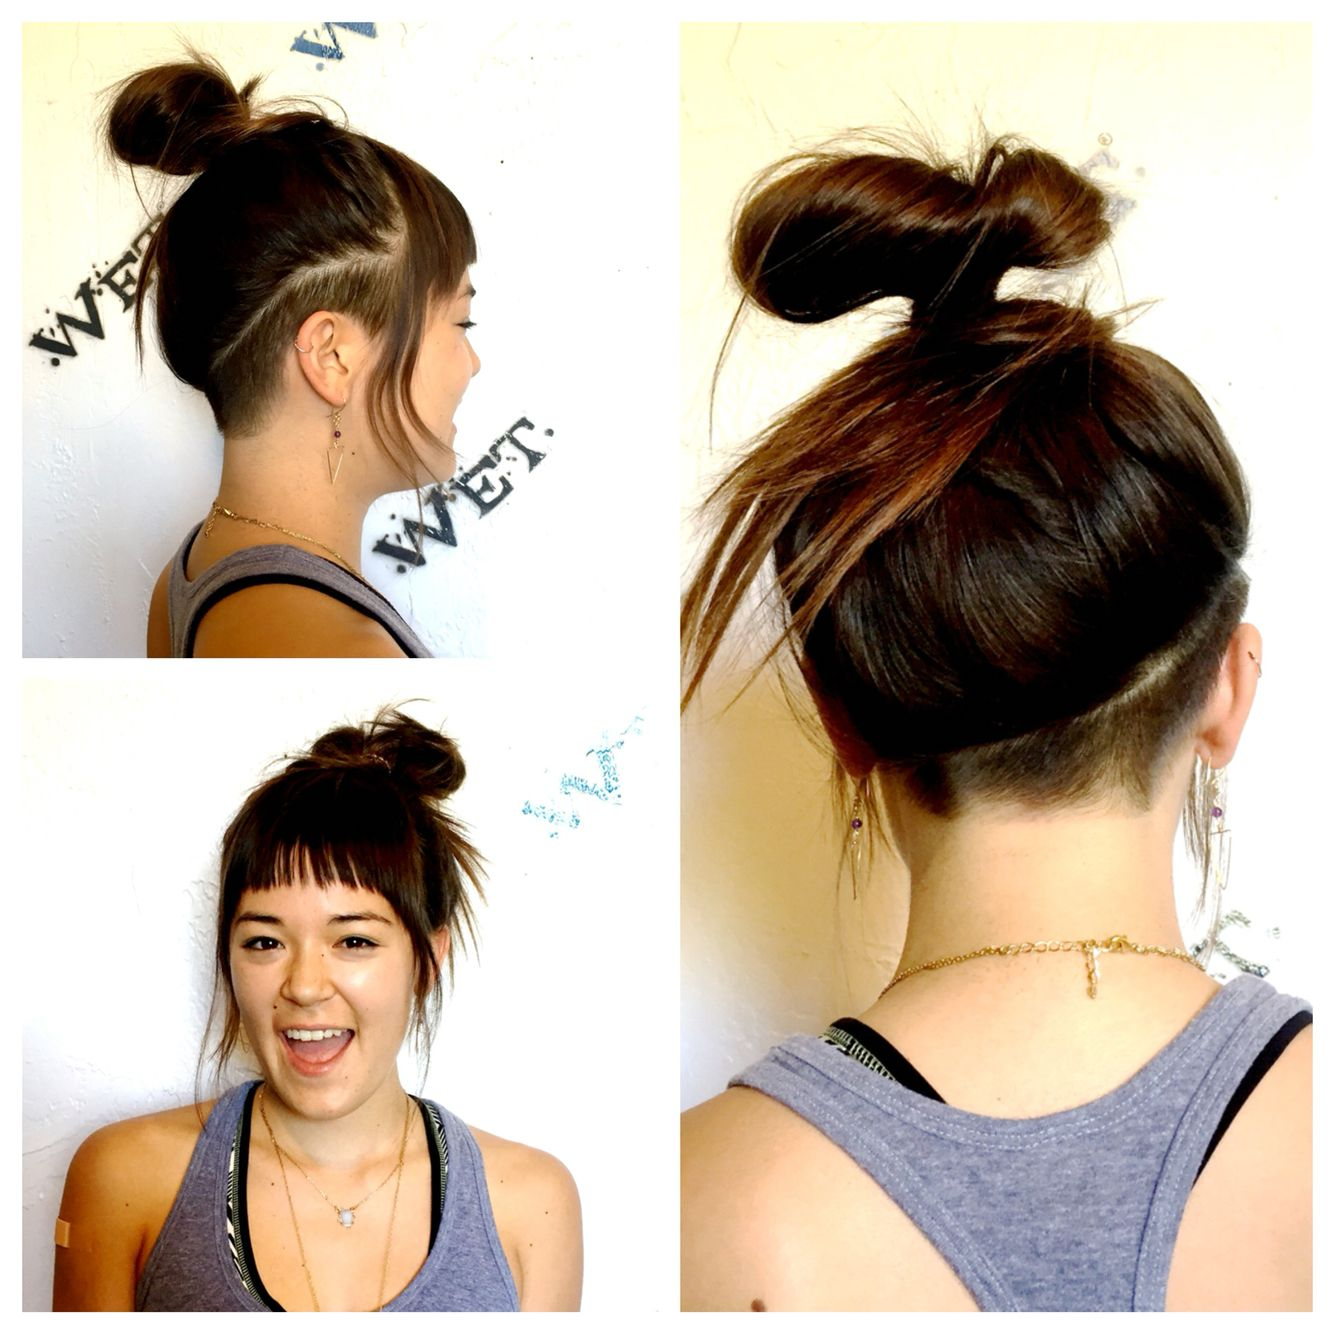 Super Fun Undercut And Textured Bangs For Samantha Love The Asymmetry And She Can Still Hide It No Problem Undercut Long Hair Stacked Hair Thick Hair Styles